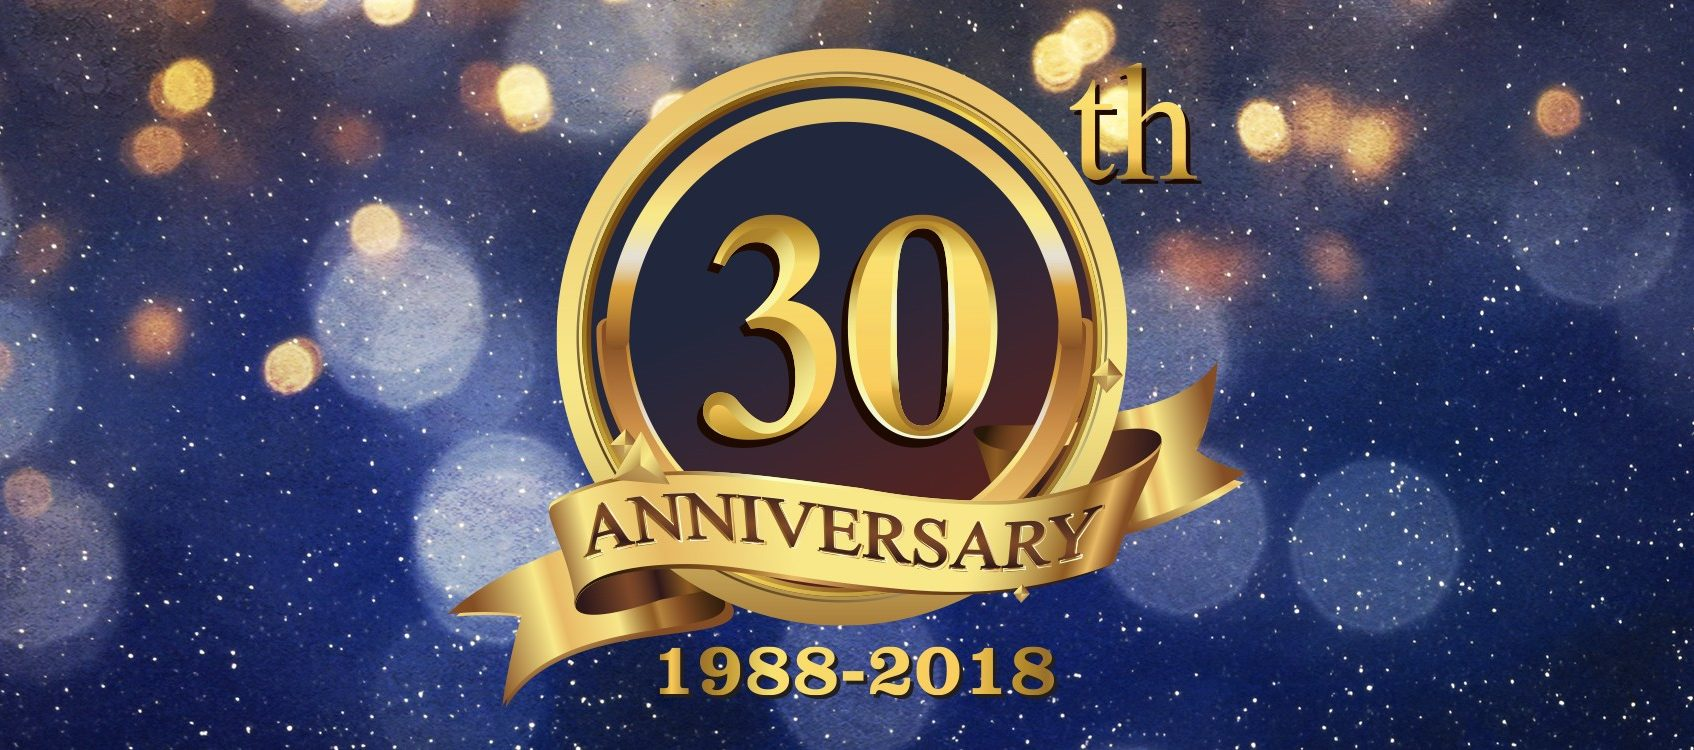 30th Anniversary - Chuck Philips Motor Vehicle Accident Attorney, New Port Richey